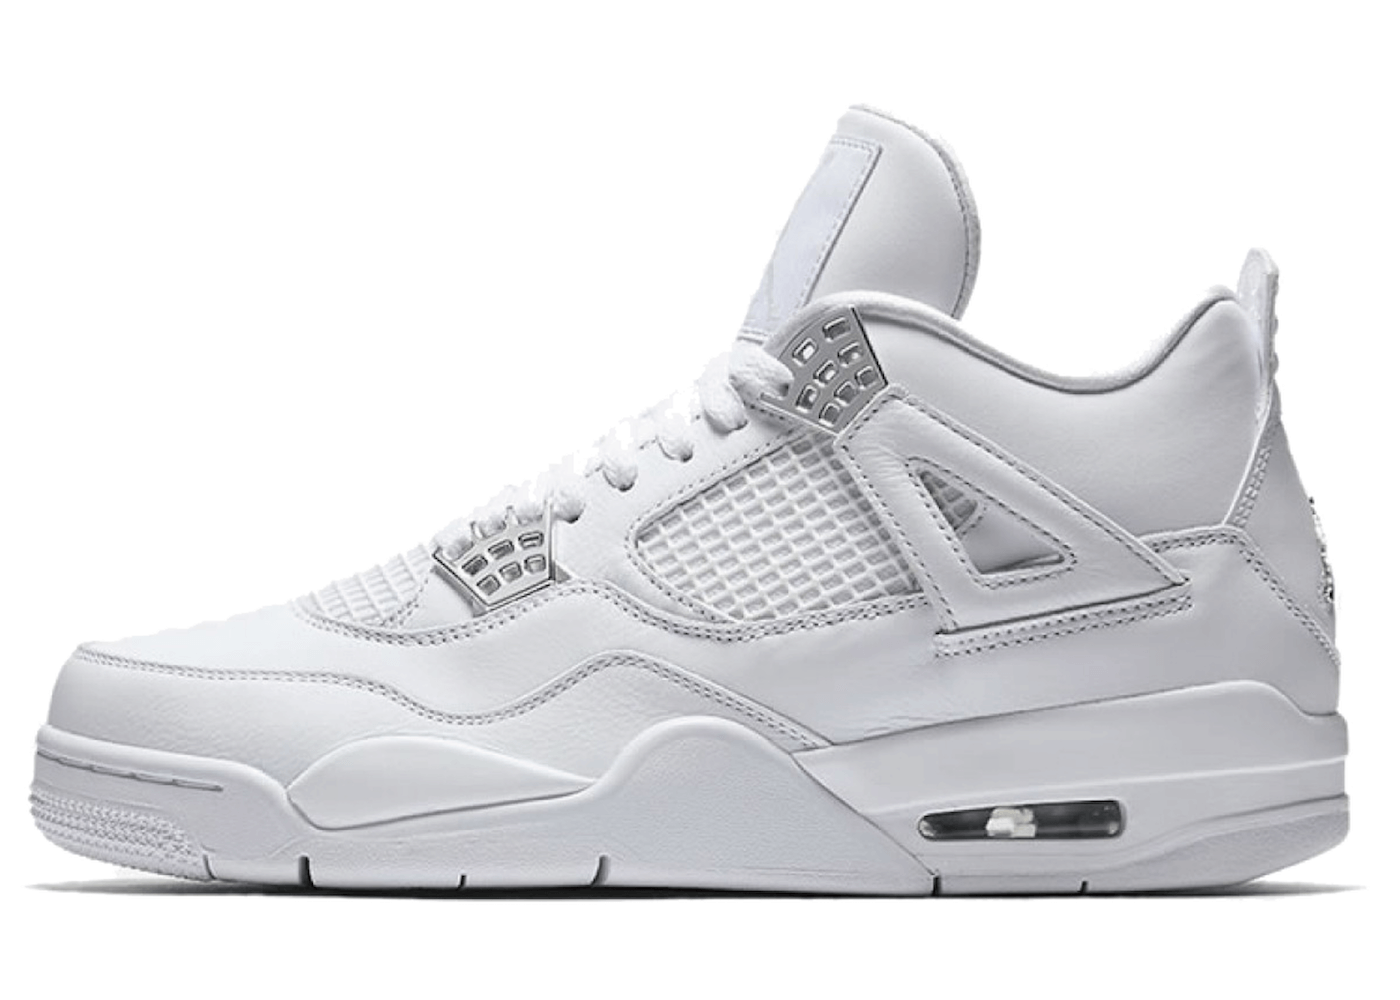 Jordan 4 Retro Pure Money (2017)の写真